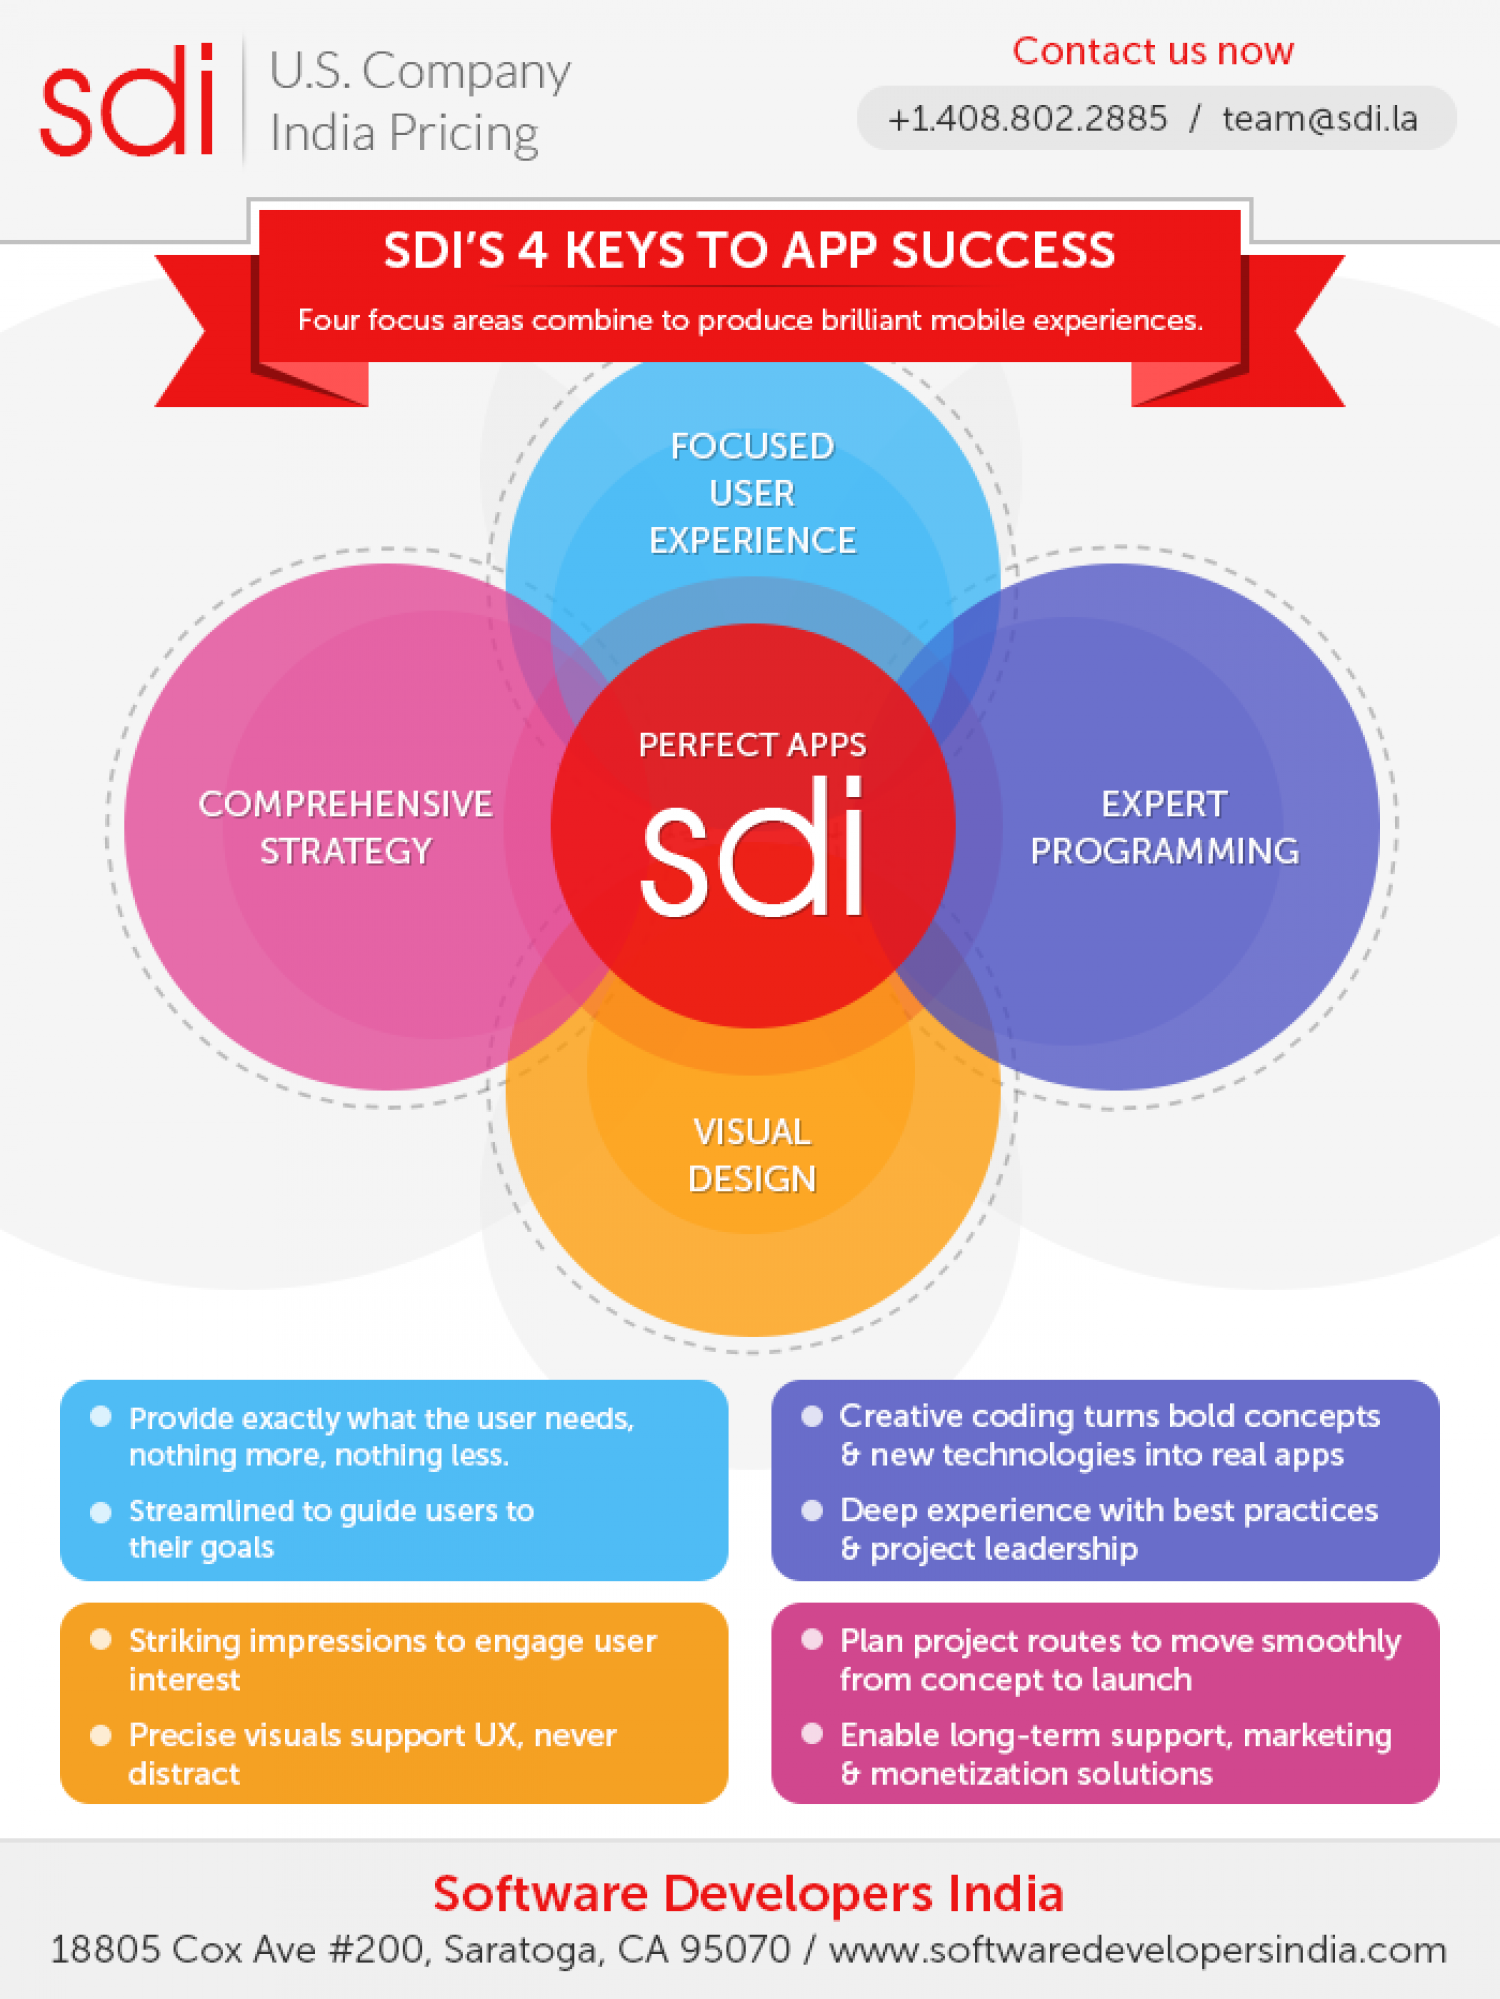 SDI's 4 keys to App Success Infographic